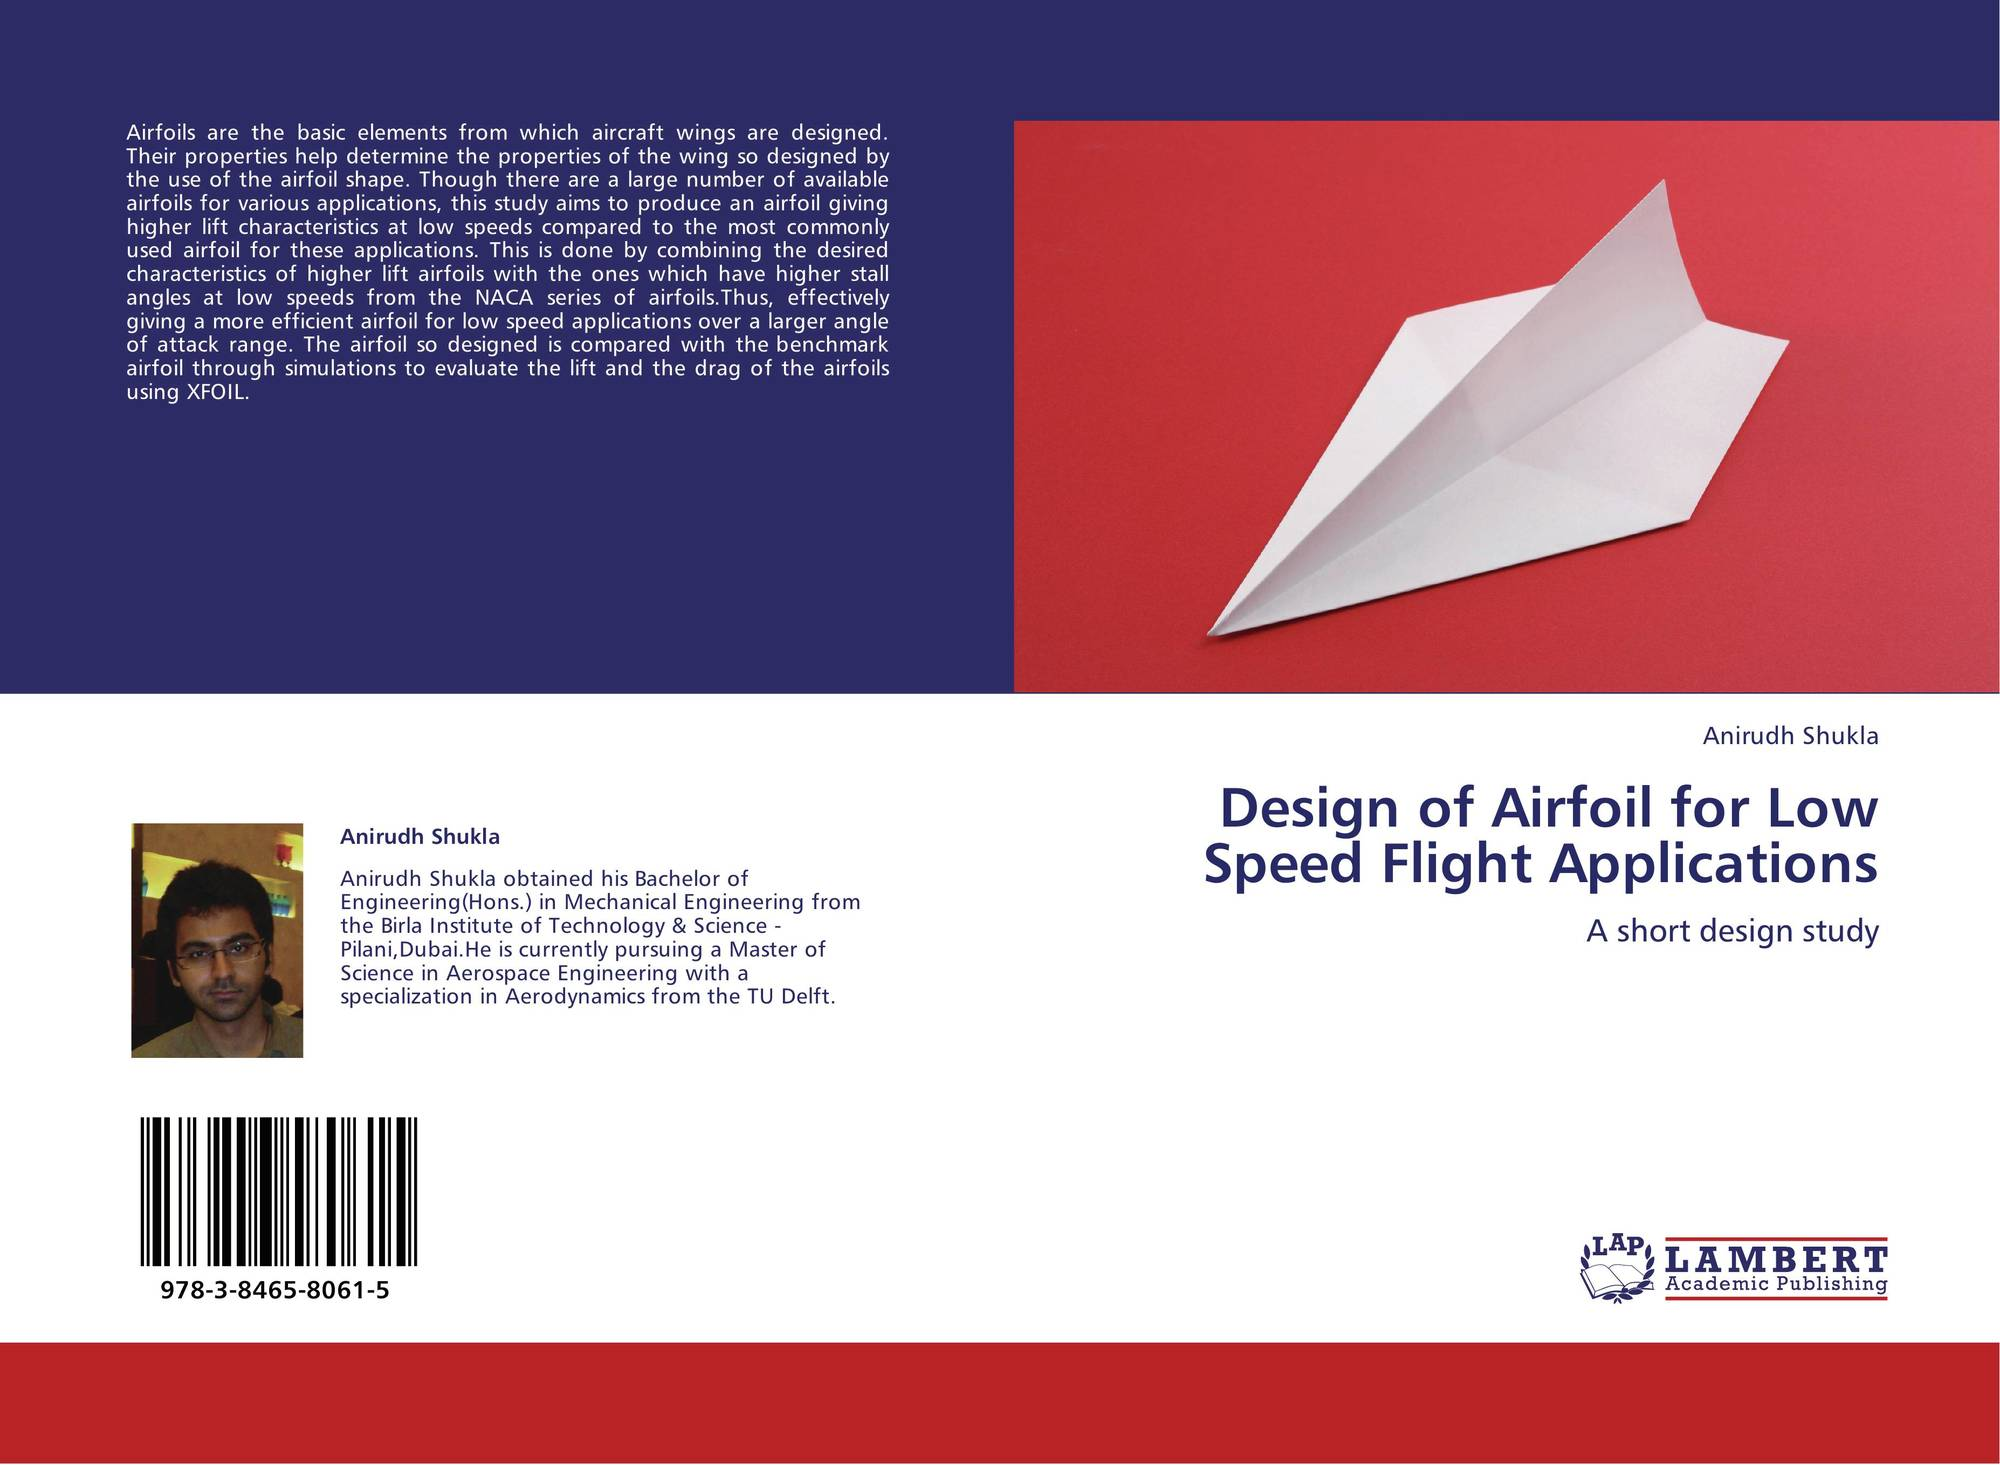 Design of Airfoil for Low Speed Flight Applications, 978-3